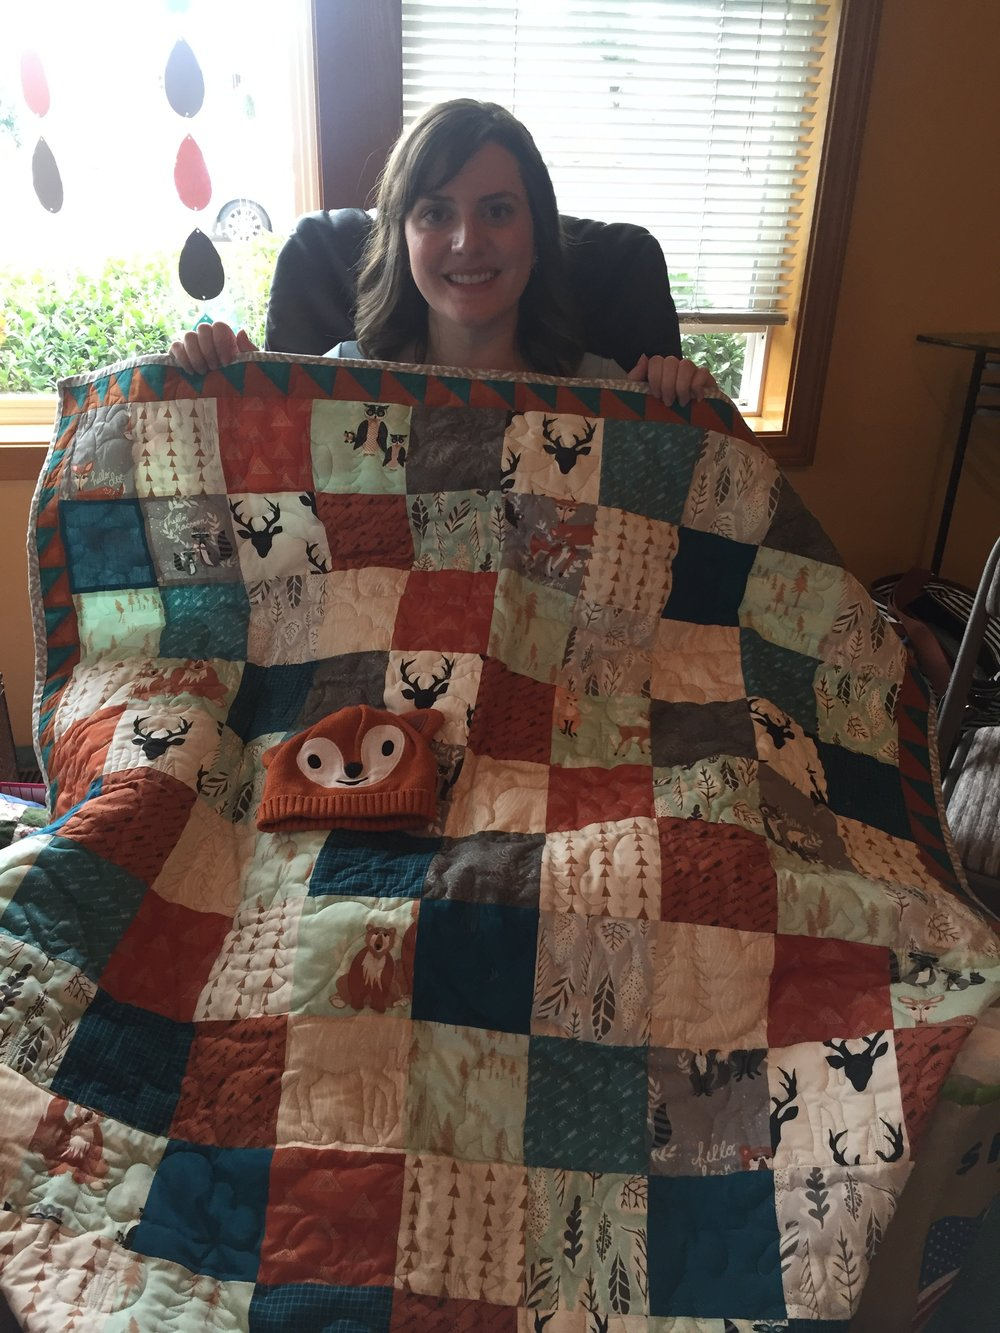 We were given many thoughtful gifts, including this amazing quilt from Talley!